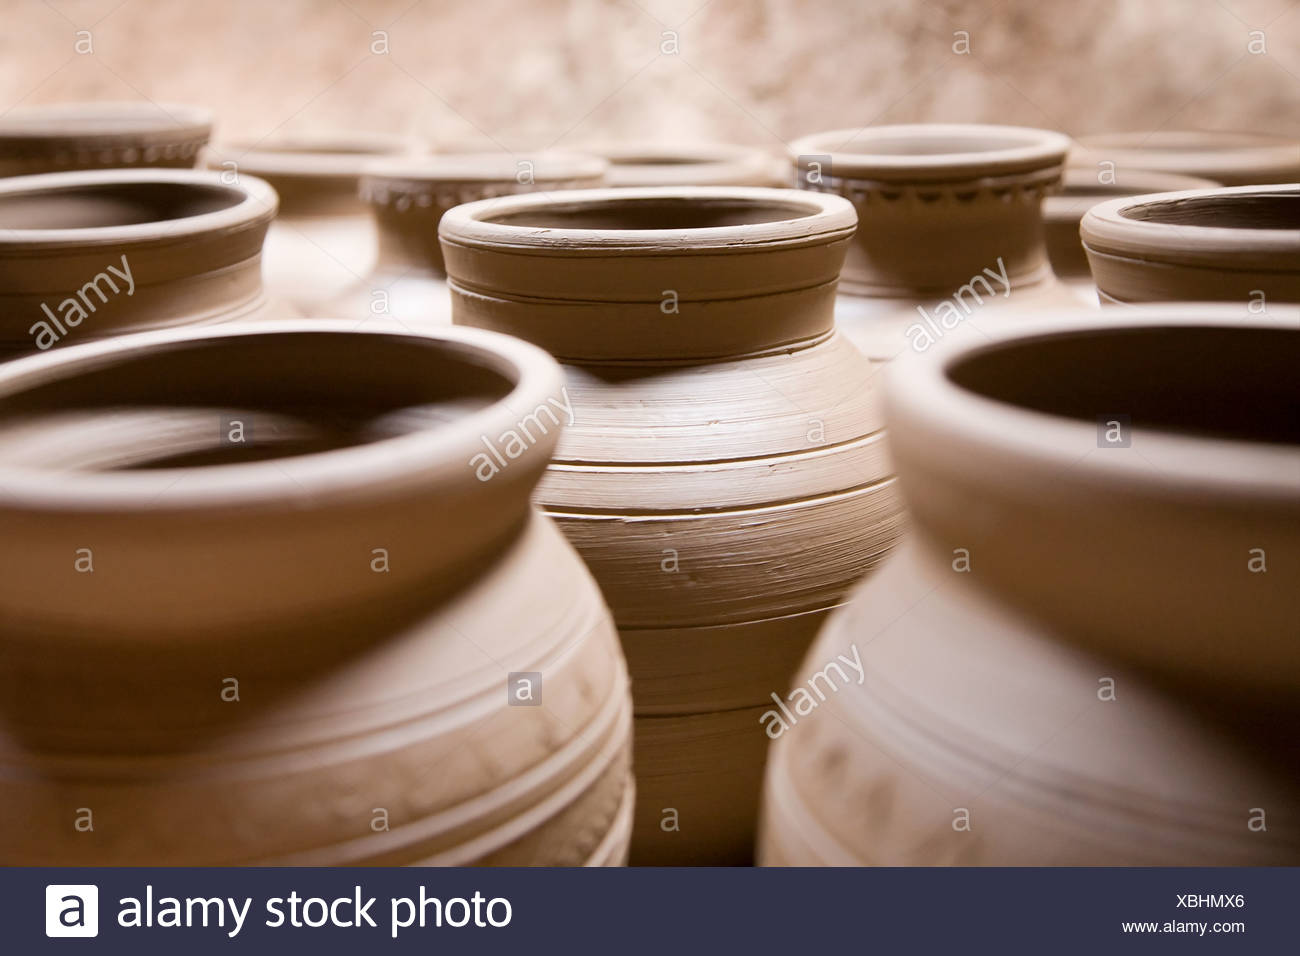 Pottery vases in market - Stock Image